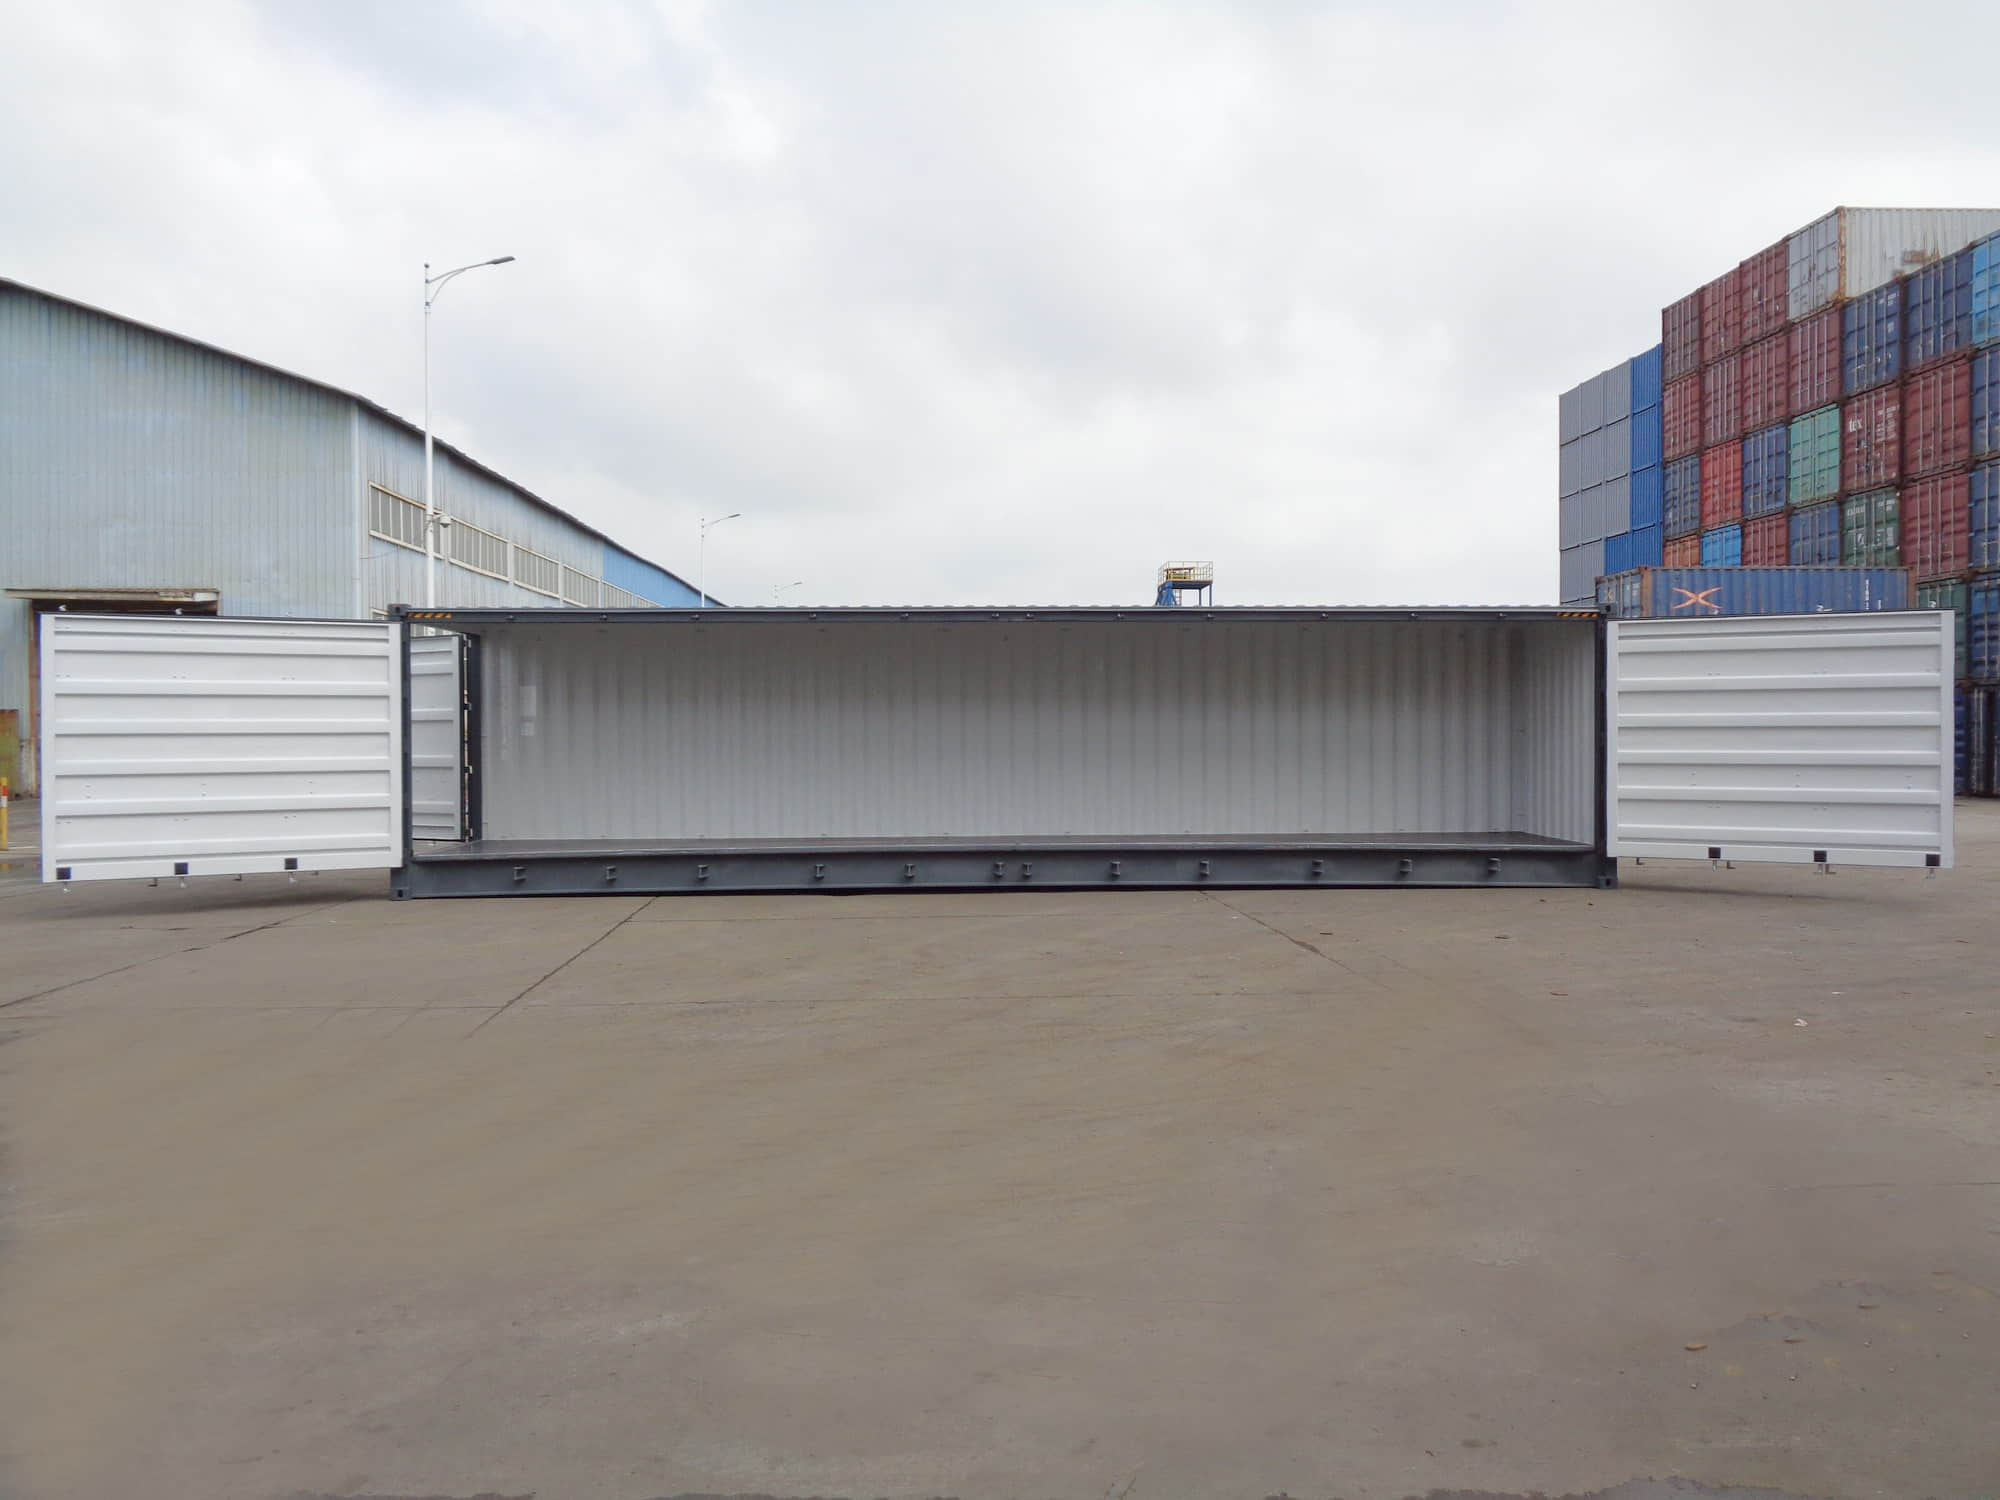 40' open side container